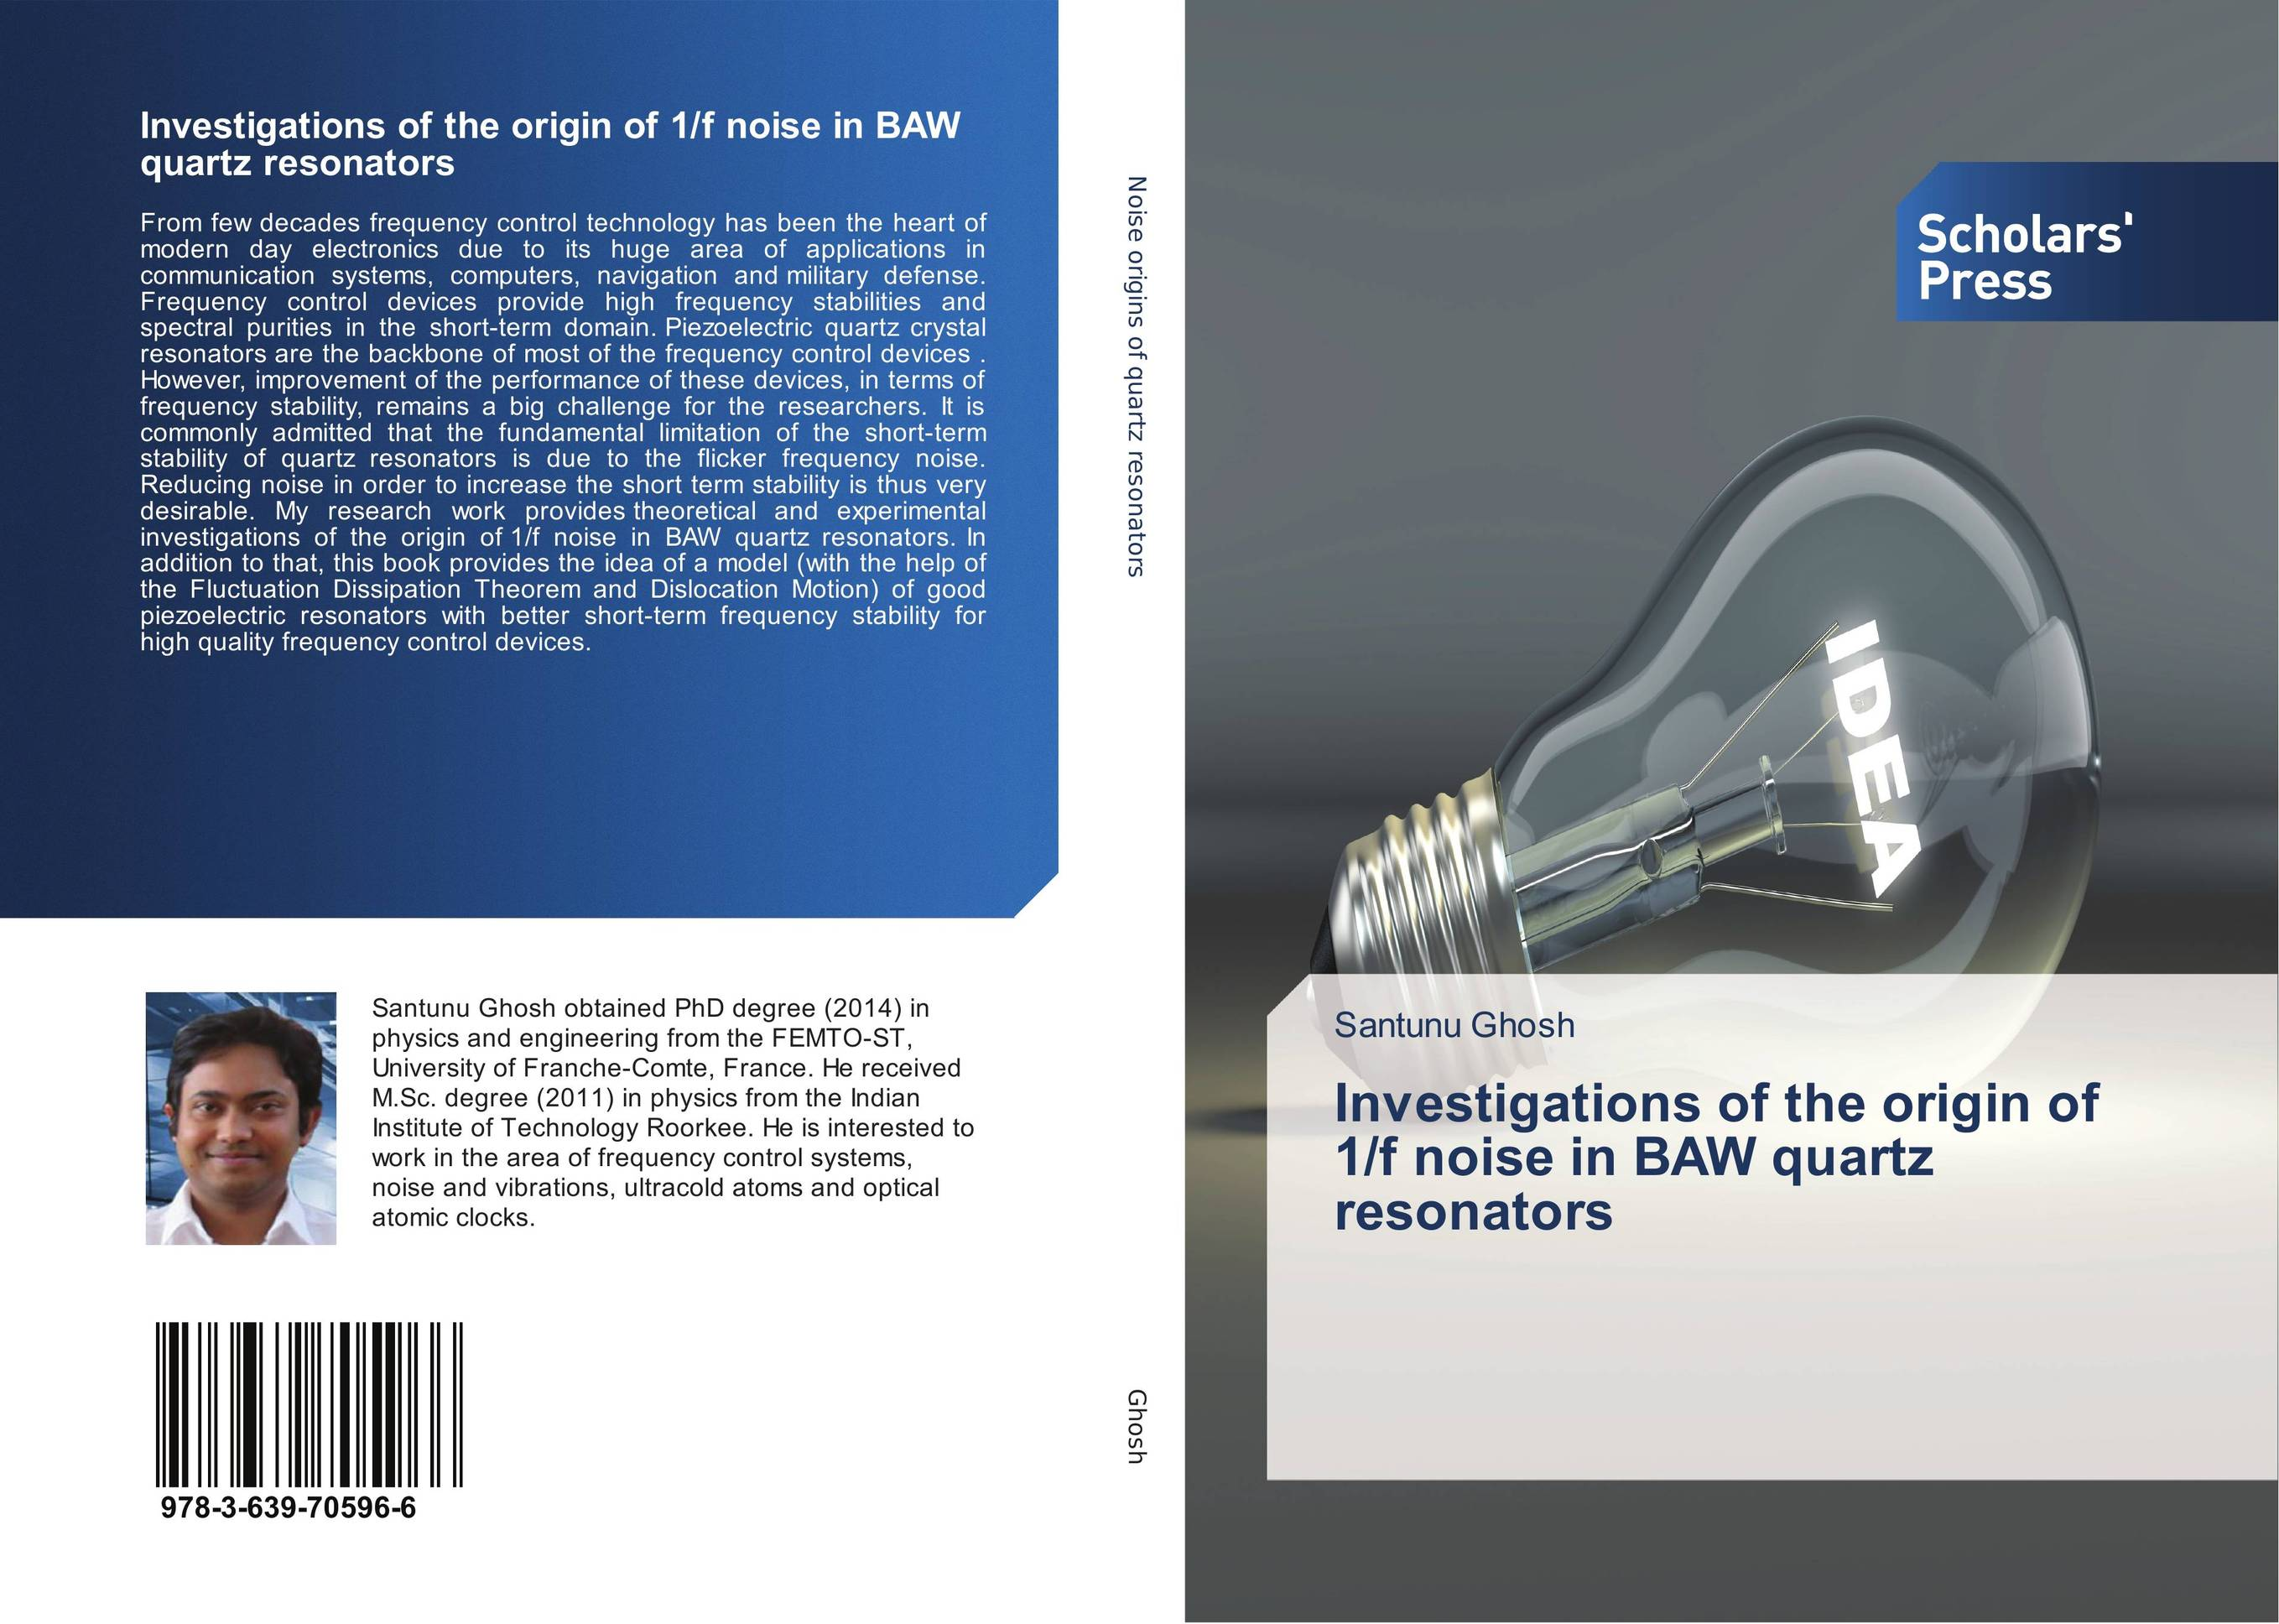 Investigations of the origin of 1/f noise in BAW quartz resonators handbook of the exhibition of napier relics and of books instruments and devices for facilitating calculation